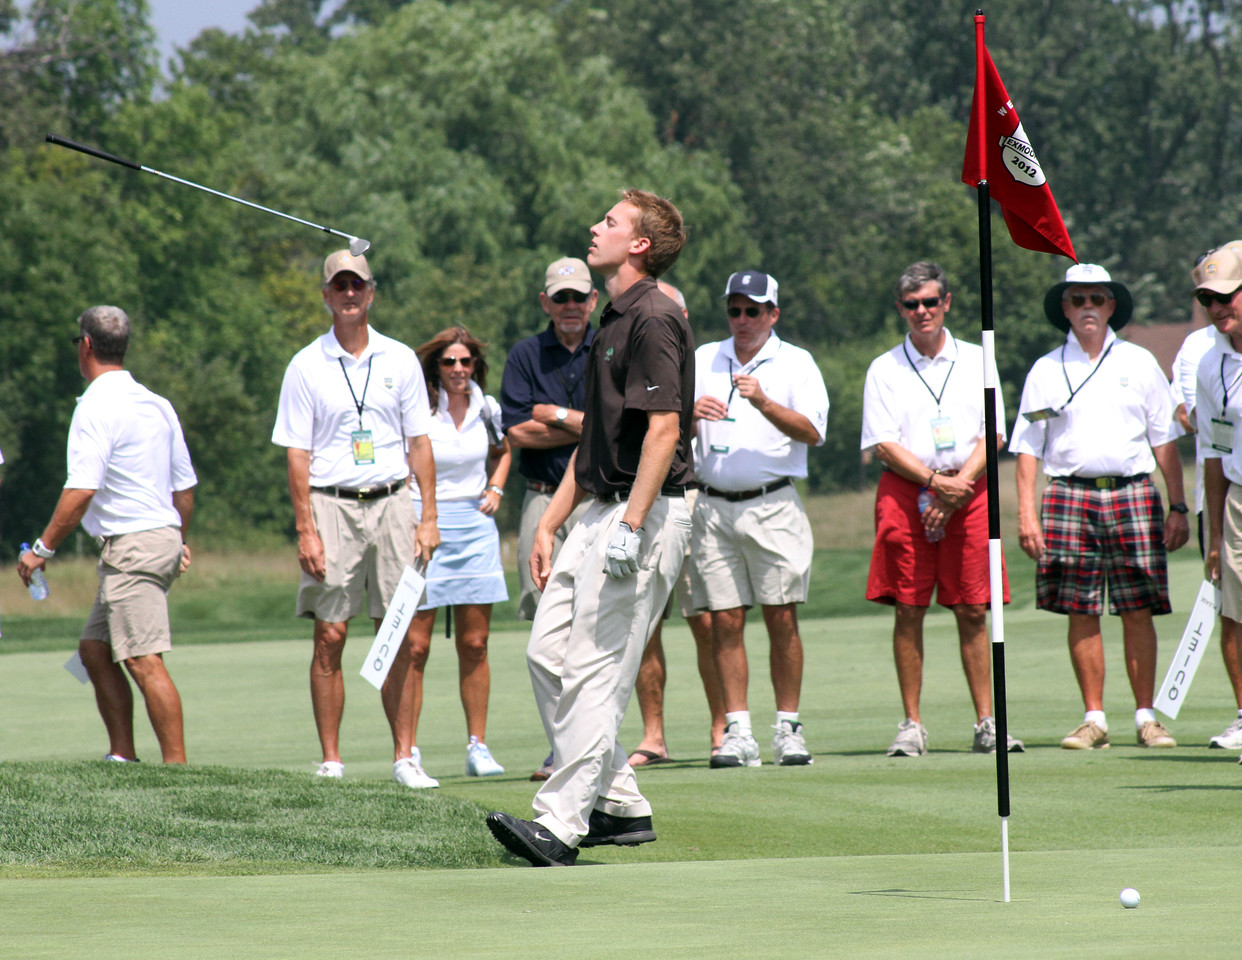 Peter Williamson reacts as his ball slides just past the cup to extend the match to another extra hole. He lost on the 20th hole in his semifinal match of the 2012 Western Amateur at Exmoor Country Club in Highland Park IL. on Aug. 4, 2012. (WGA Photo/Ian Yelton)